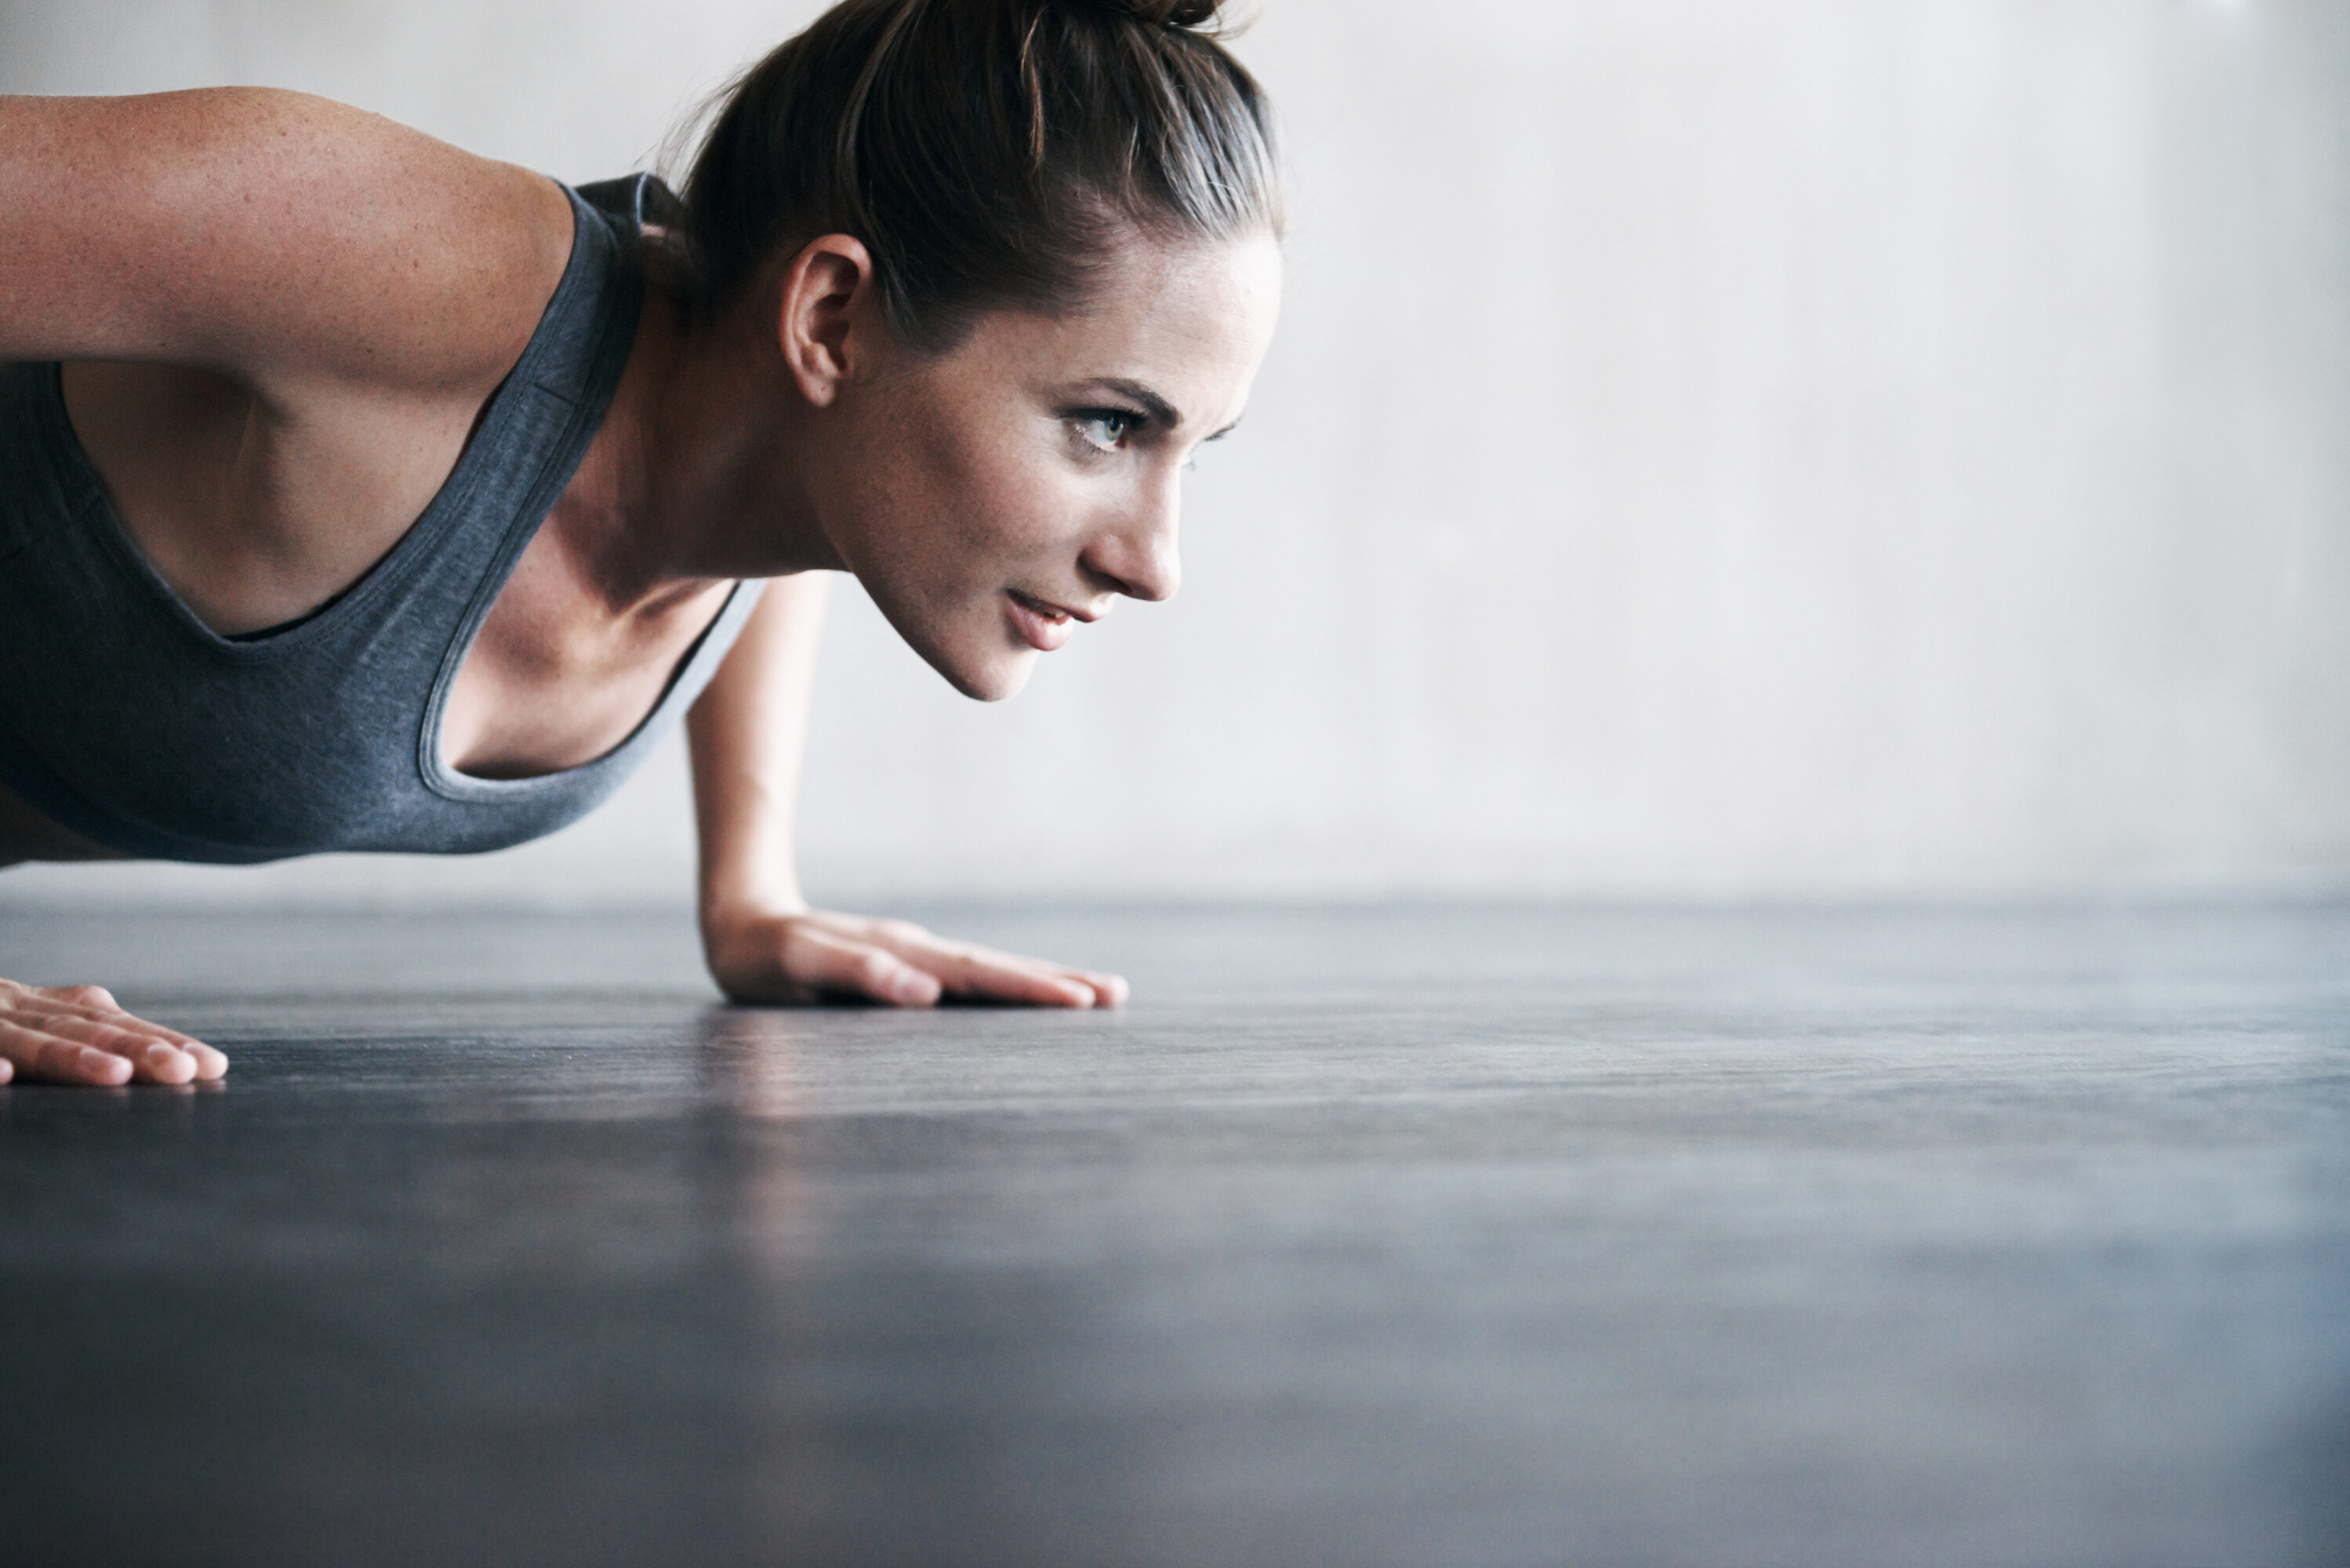 Improve your sports performance with these powerful tips